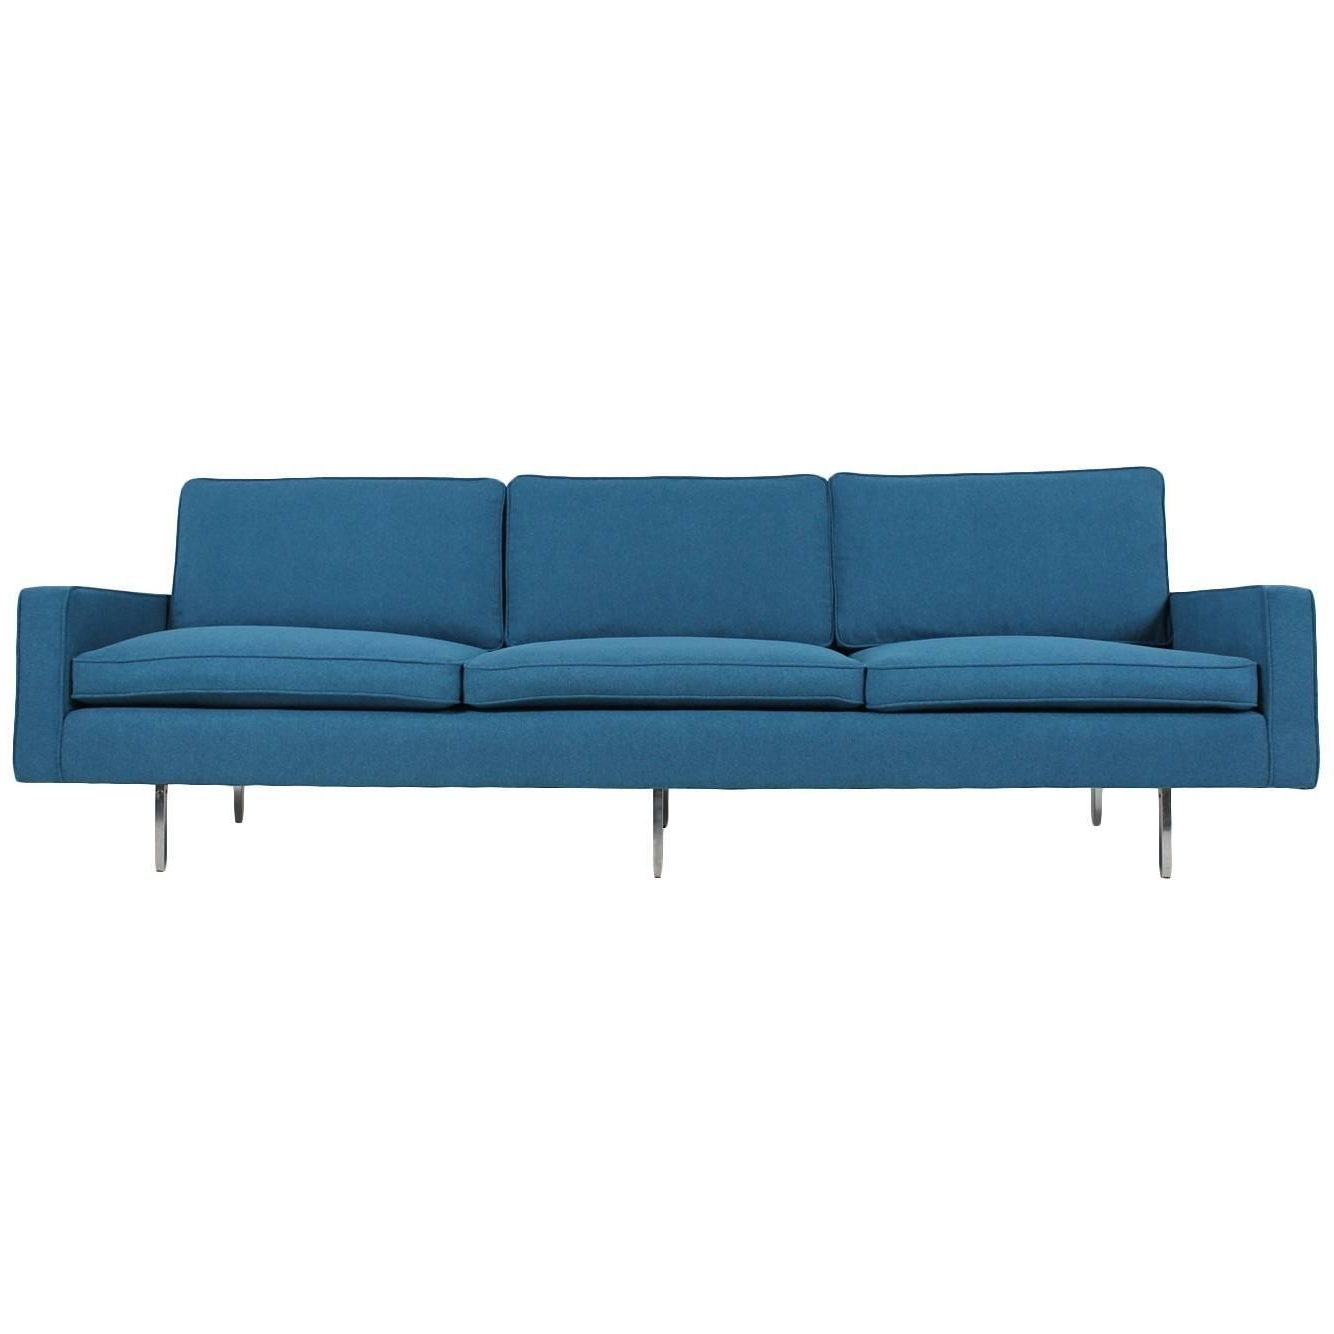 Florence Knoll Sofas – 61 For Sale At 1Stdibs Intended For Fashionable Florence Grand Sofas (View 10 of 15)